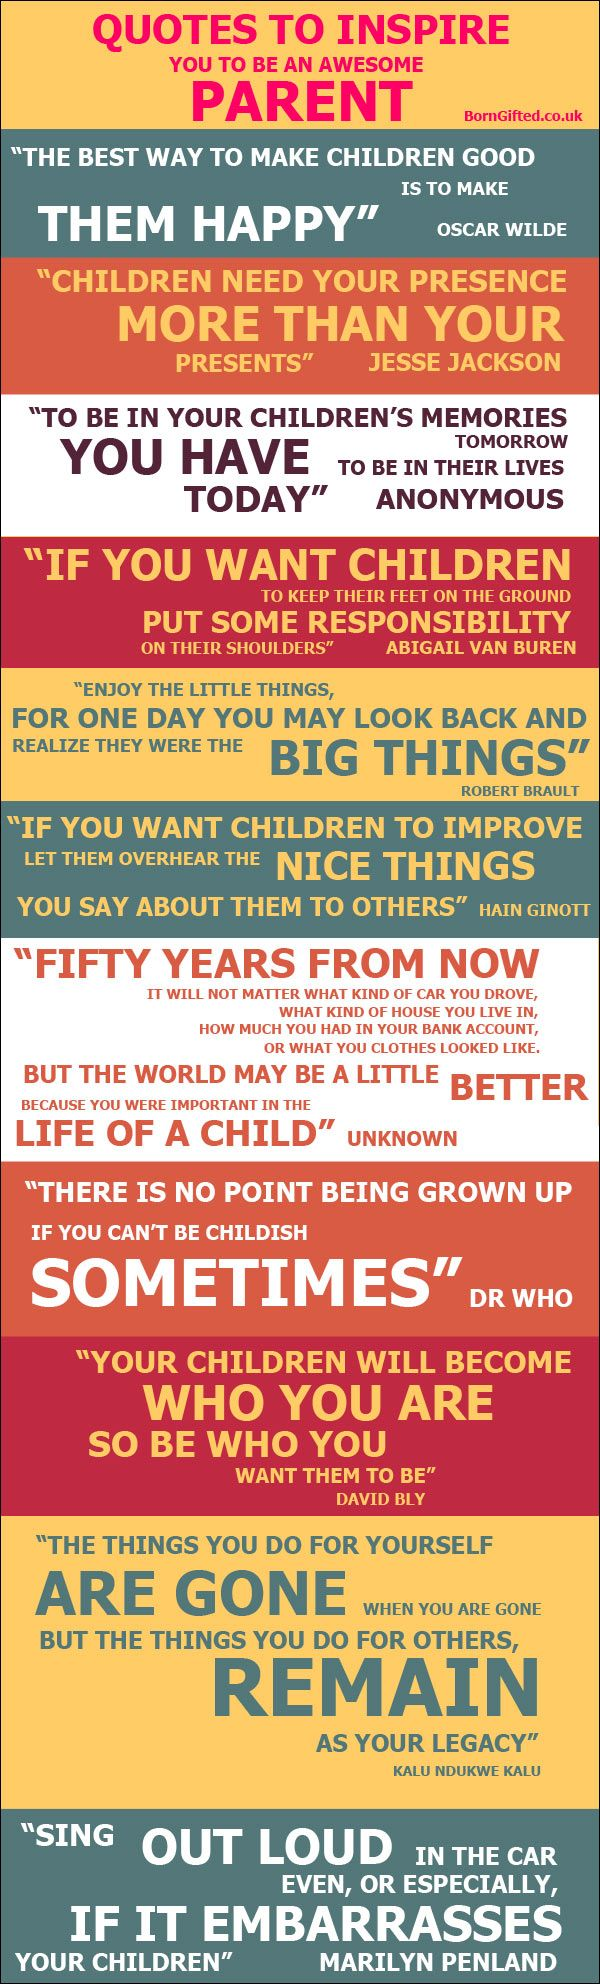 Inspirational Parenting Quotes. We may not become biological parents, but surely we will have an influence in the lives of the young. It takes a village to raise a child.